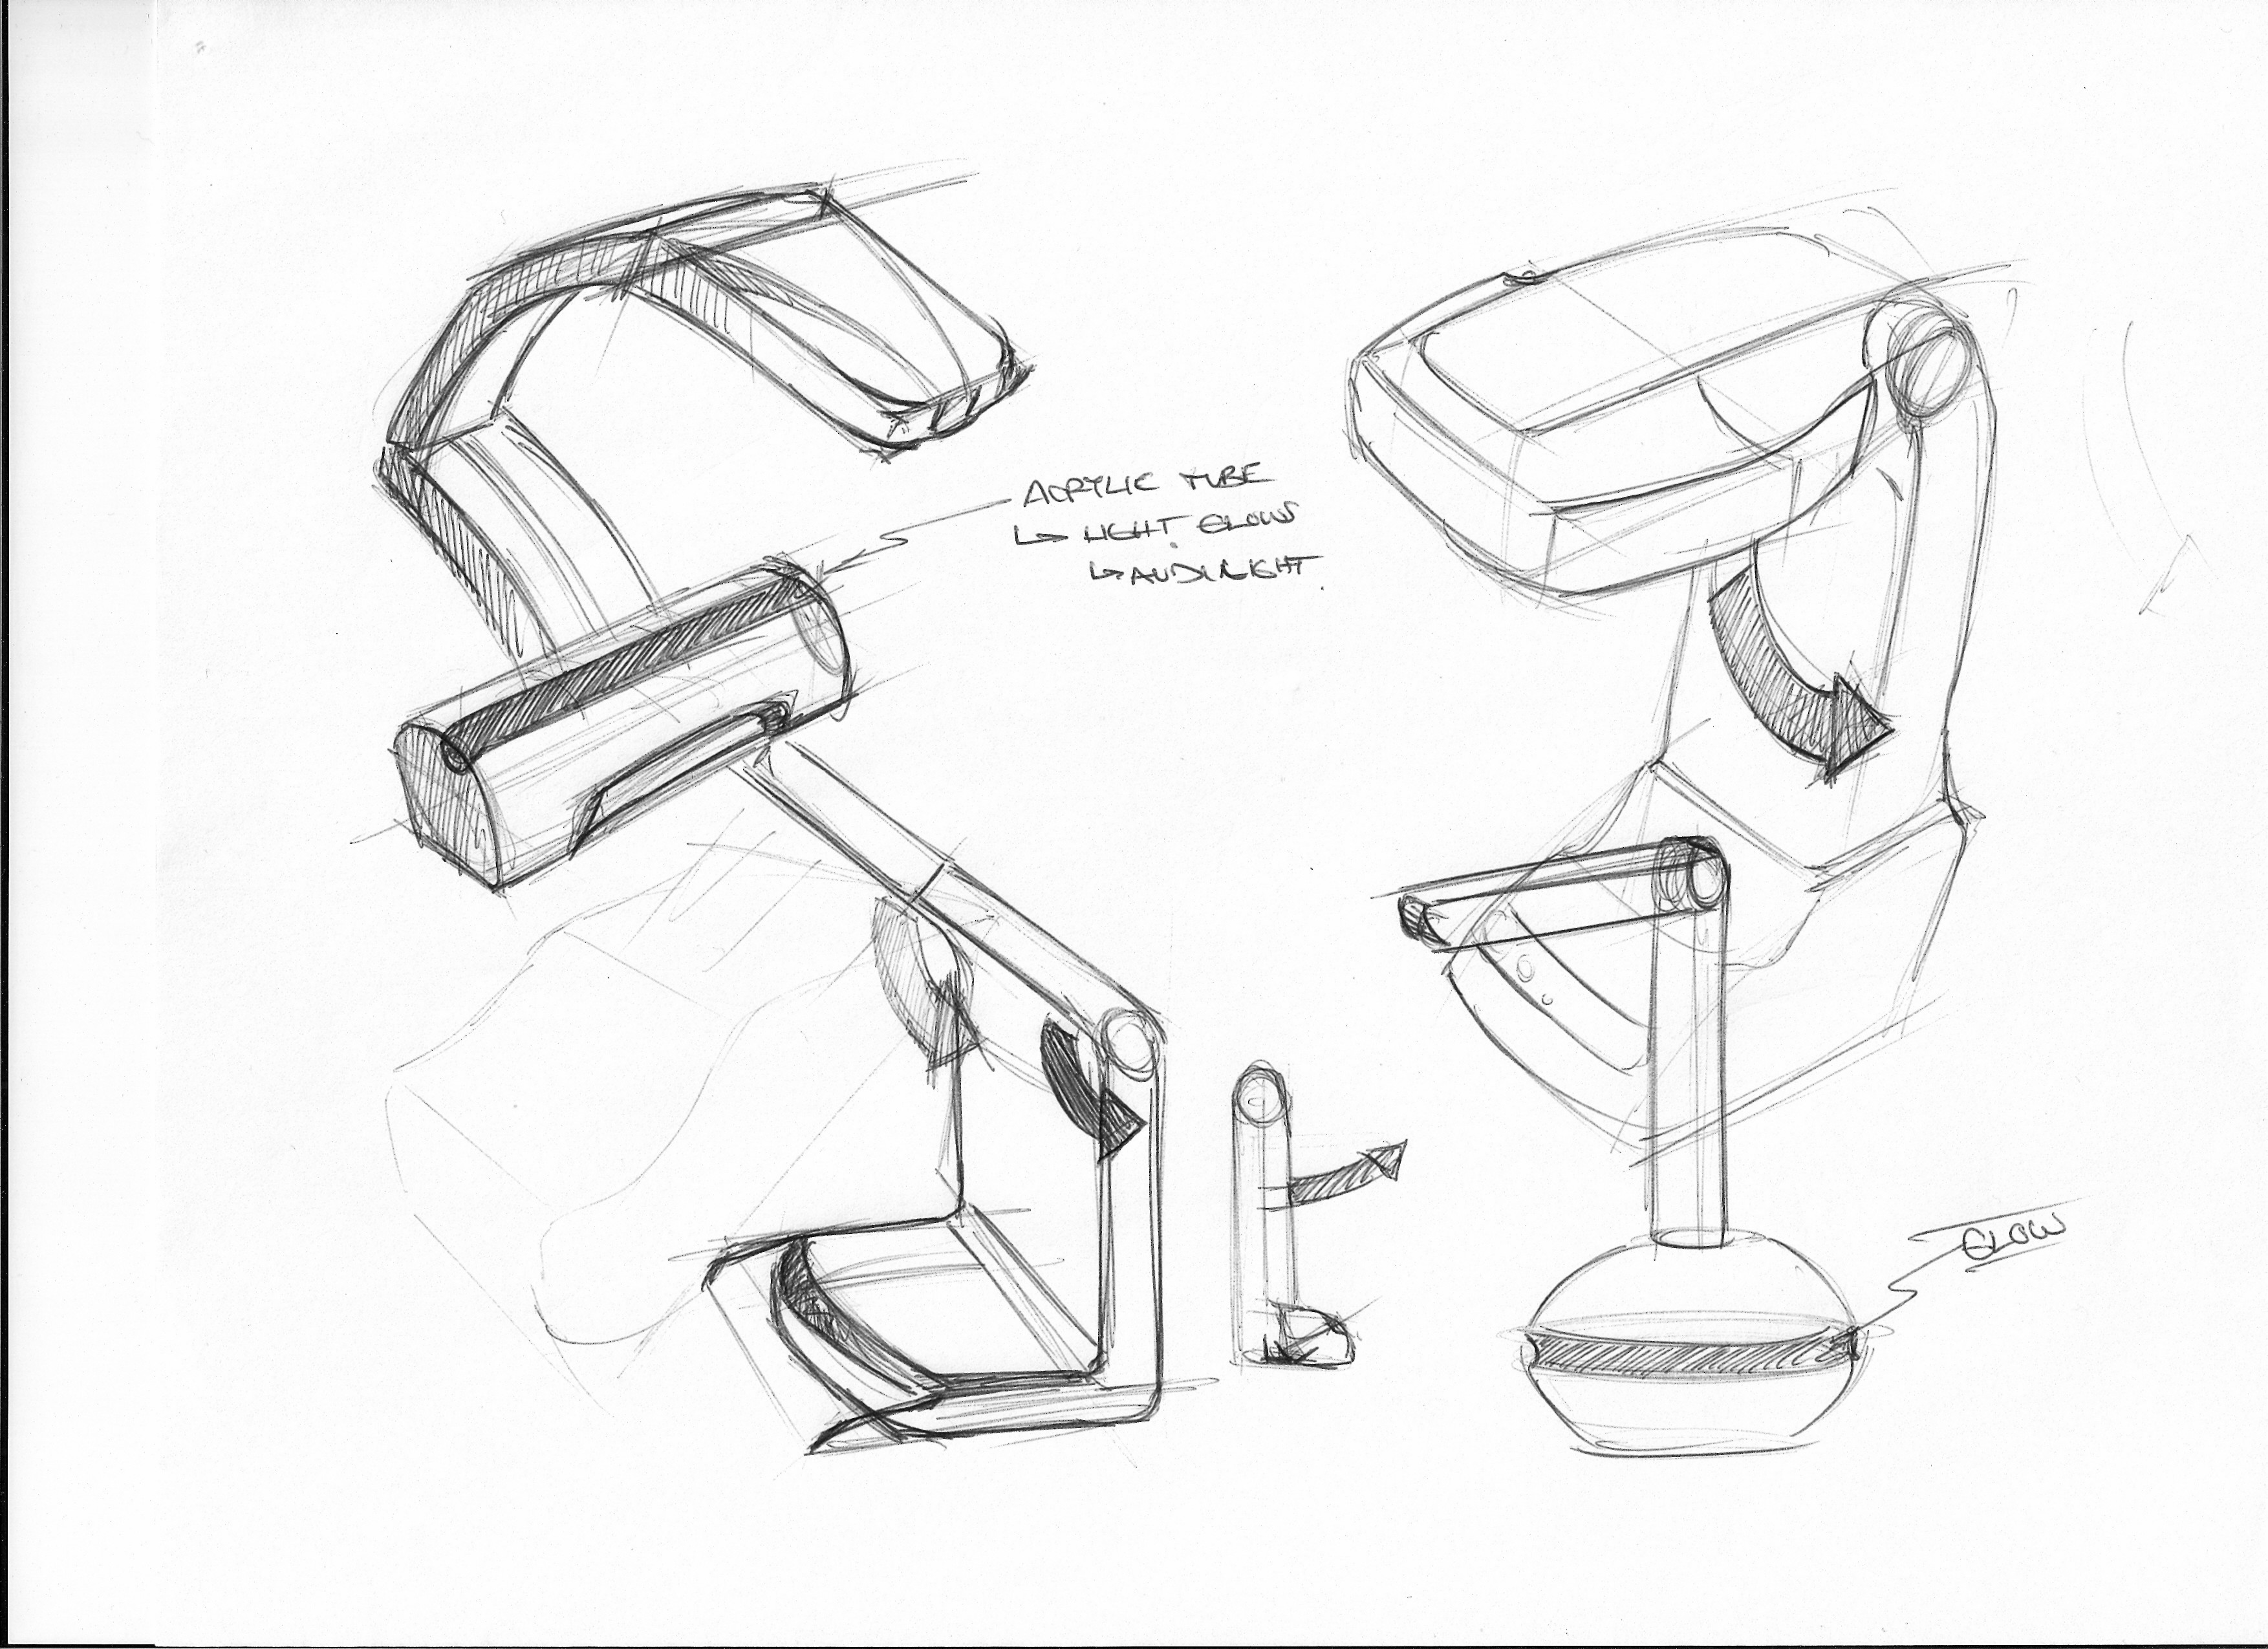 Desk lamp drawing at getdrawings free for personal use desk 3507x2550 desk lamp mechanism drawing aloadofball Image collections